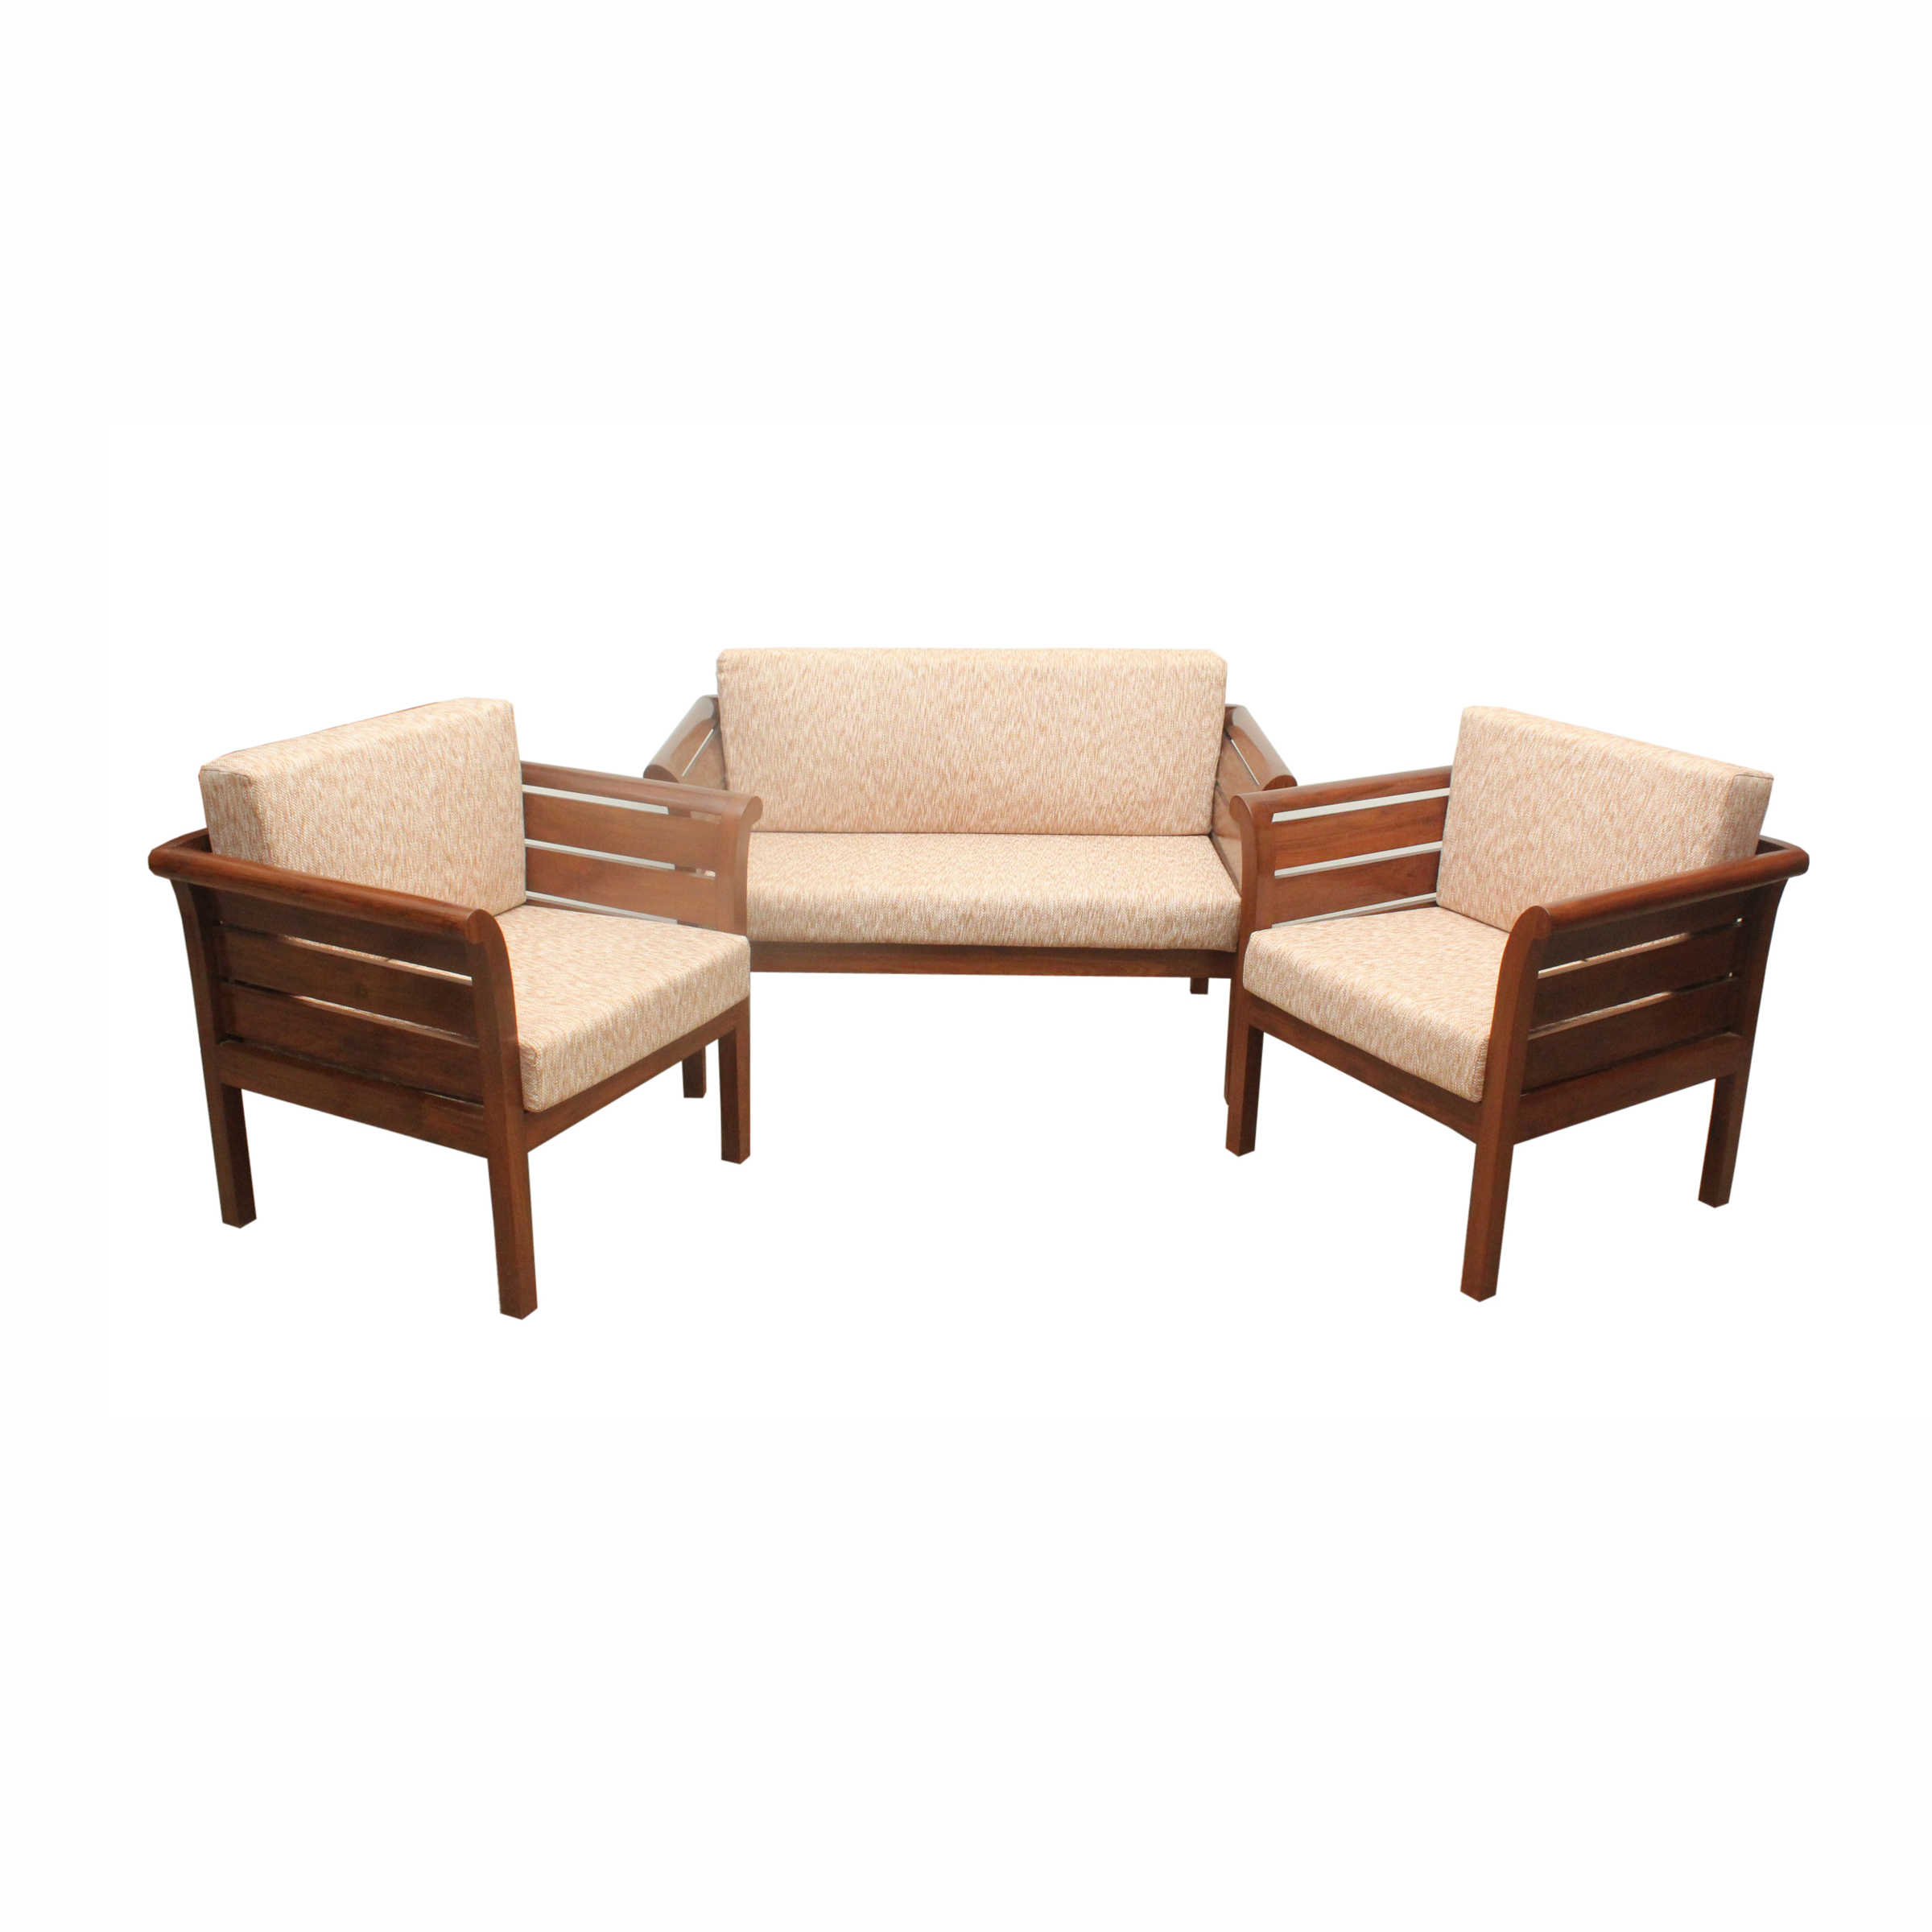 Bic Wooden Furniture Manufacturers Buy Furniture Online Sofa Sets Wood Sofa Manufacturers India